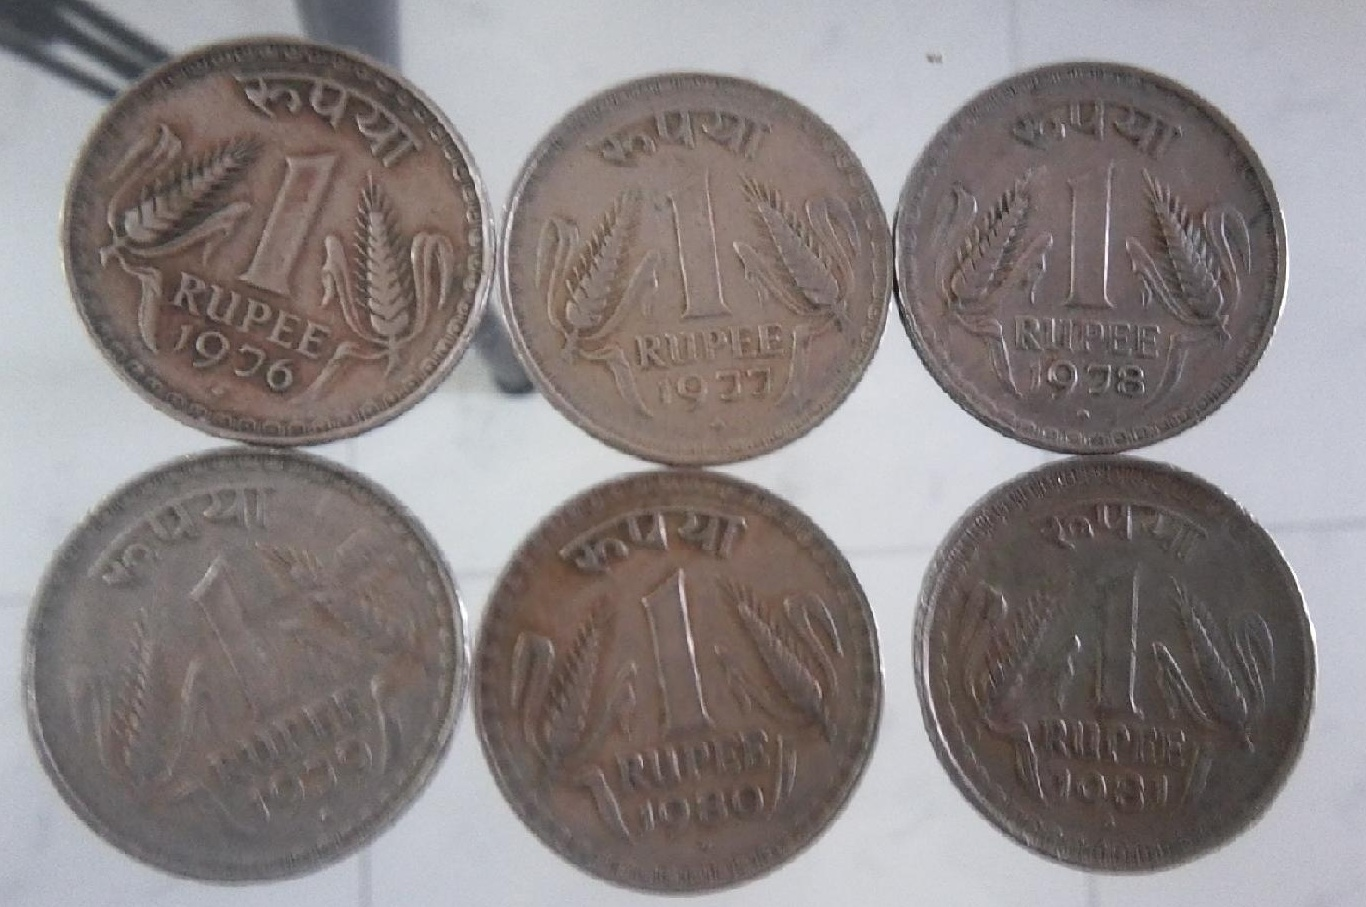 Old Coins Pictures And Price - Porn Website Name-6296